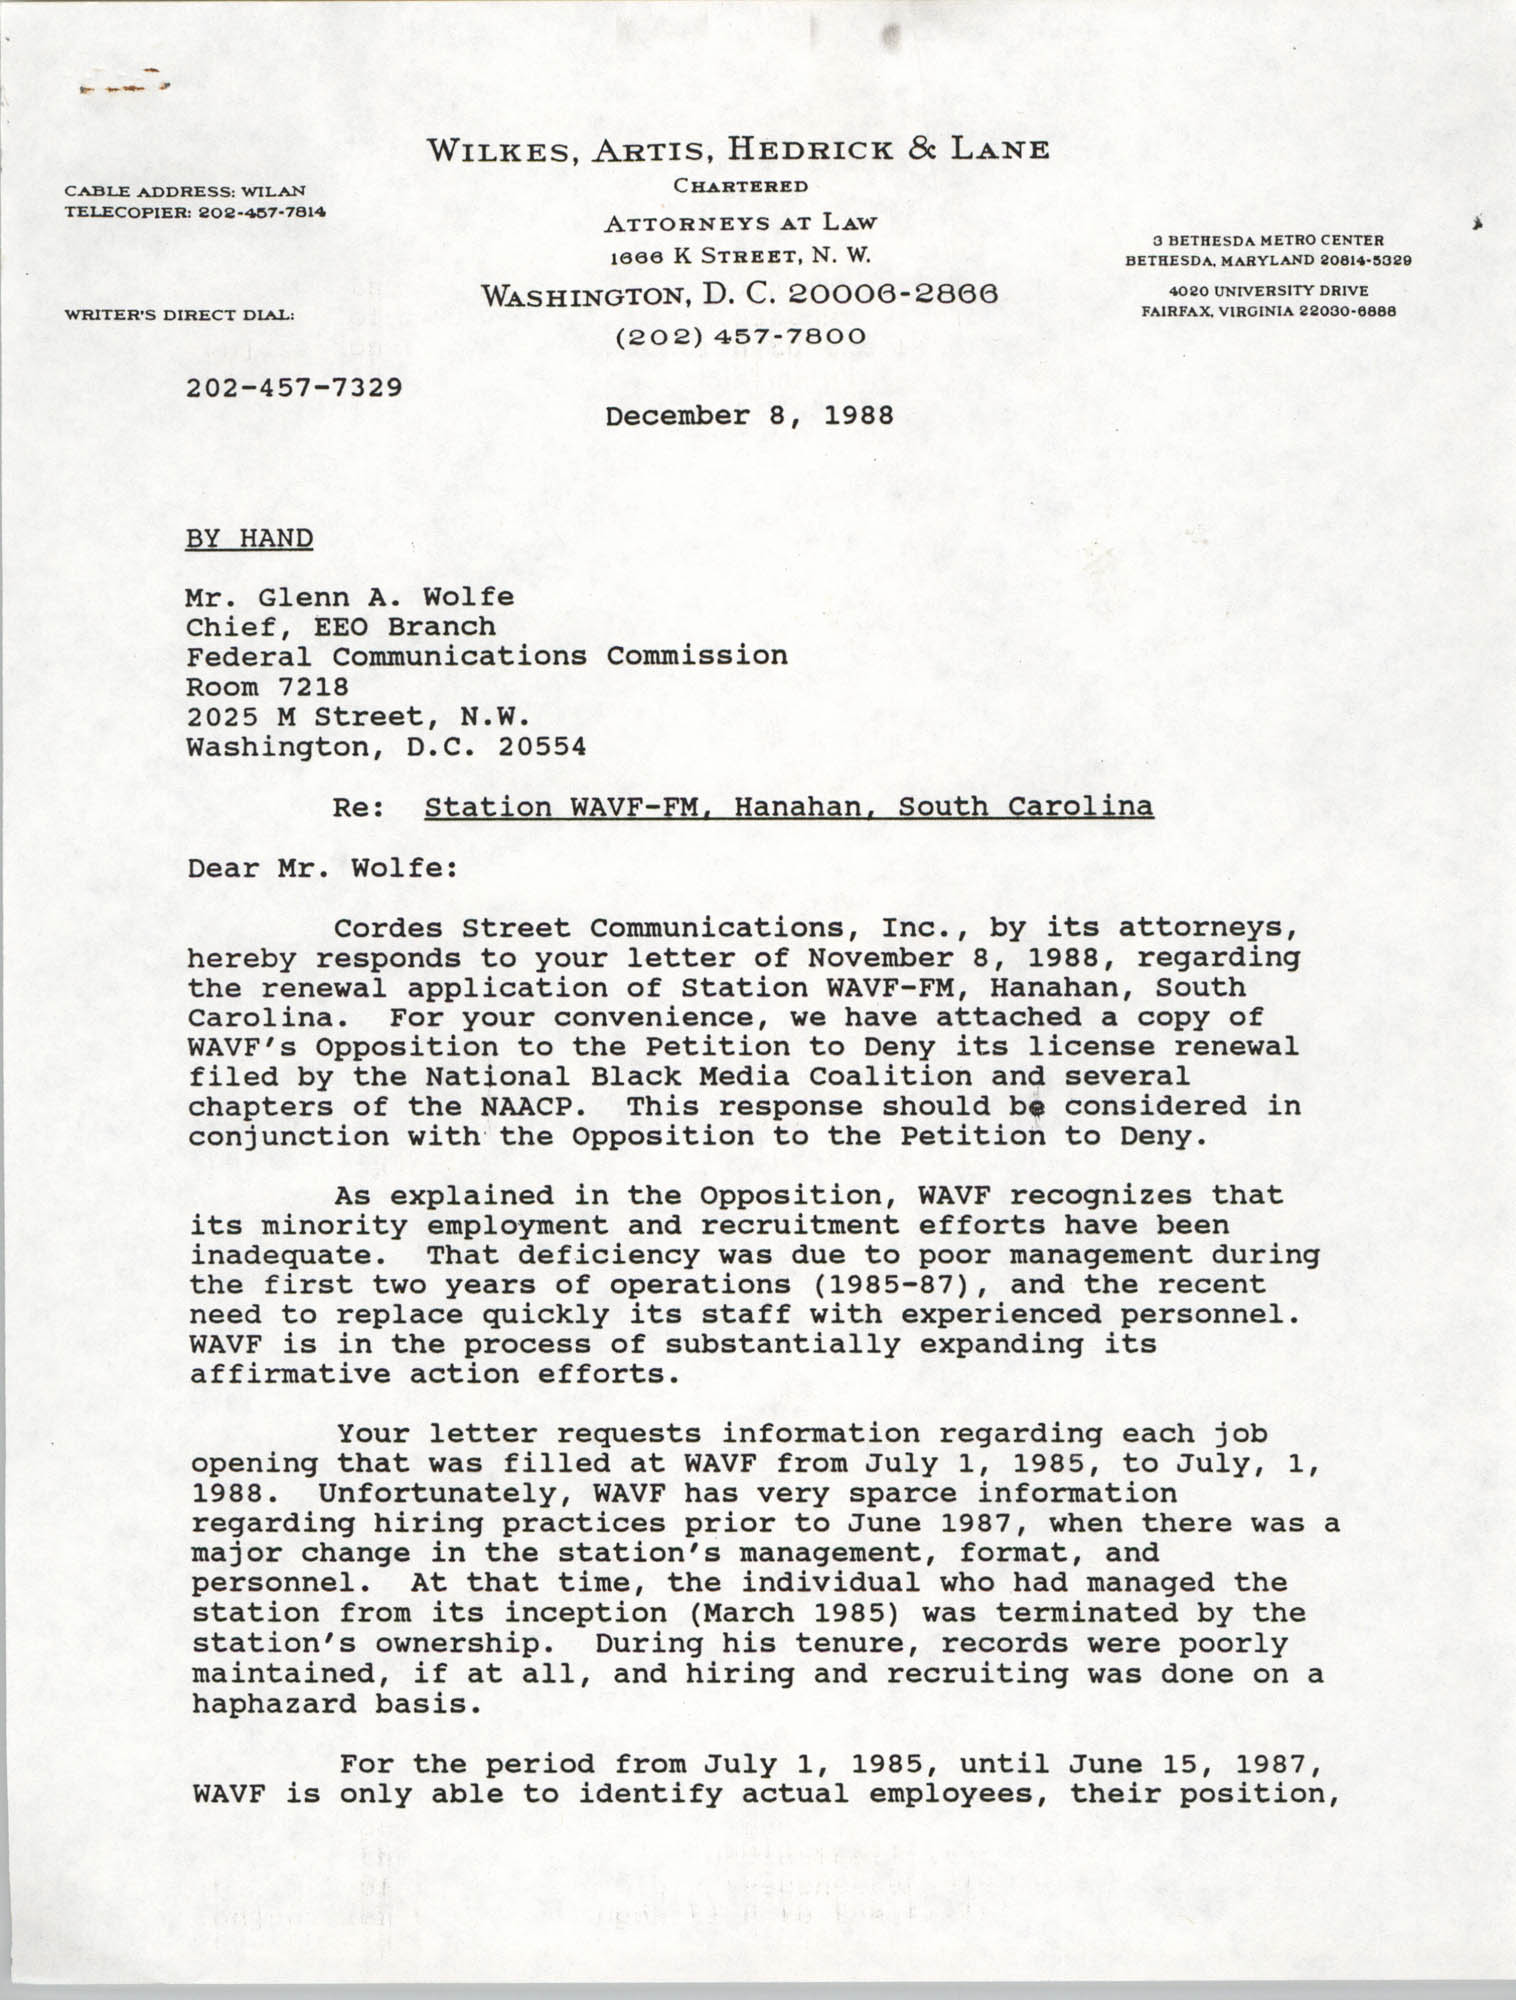 Letter from Martin J. Gaynes and Robert M. Gurss to Glenn A. Wolfe, December 8, 1988, Page 1